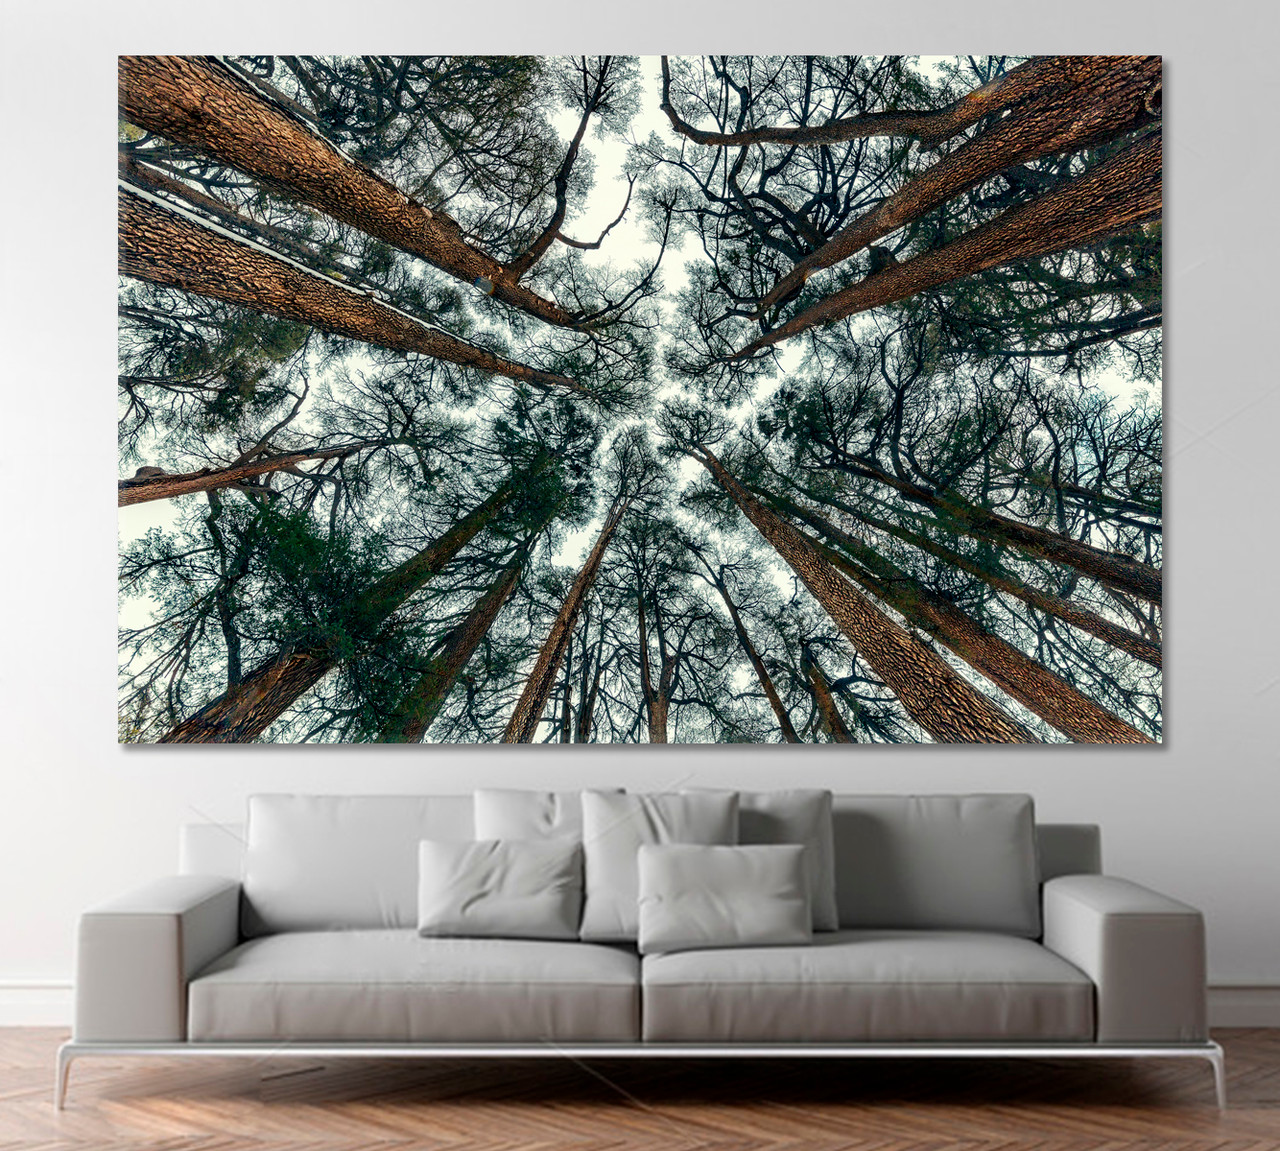 Frorest Trees Wall Art